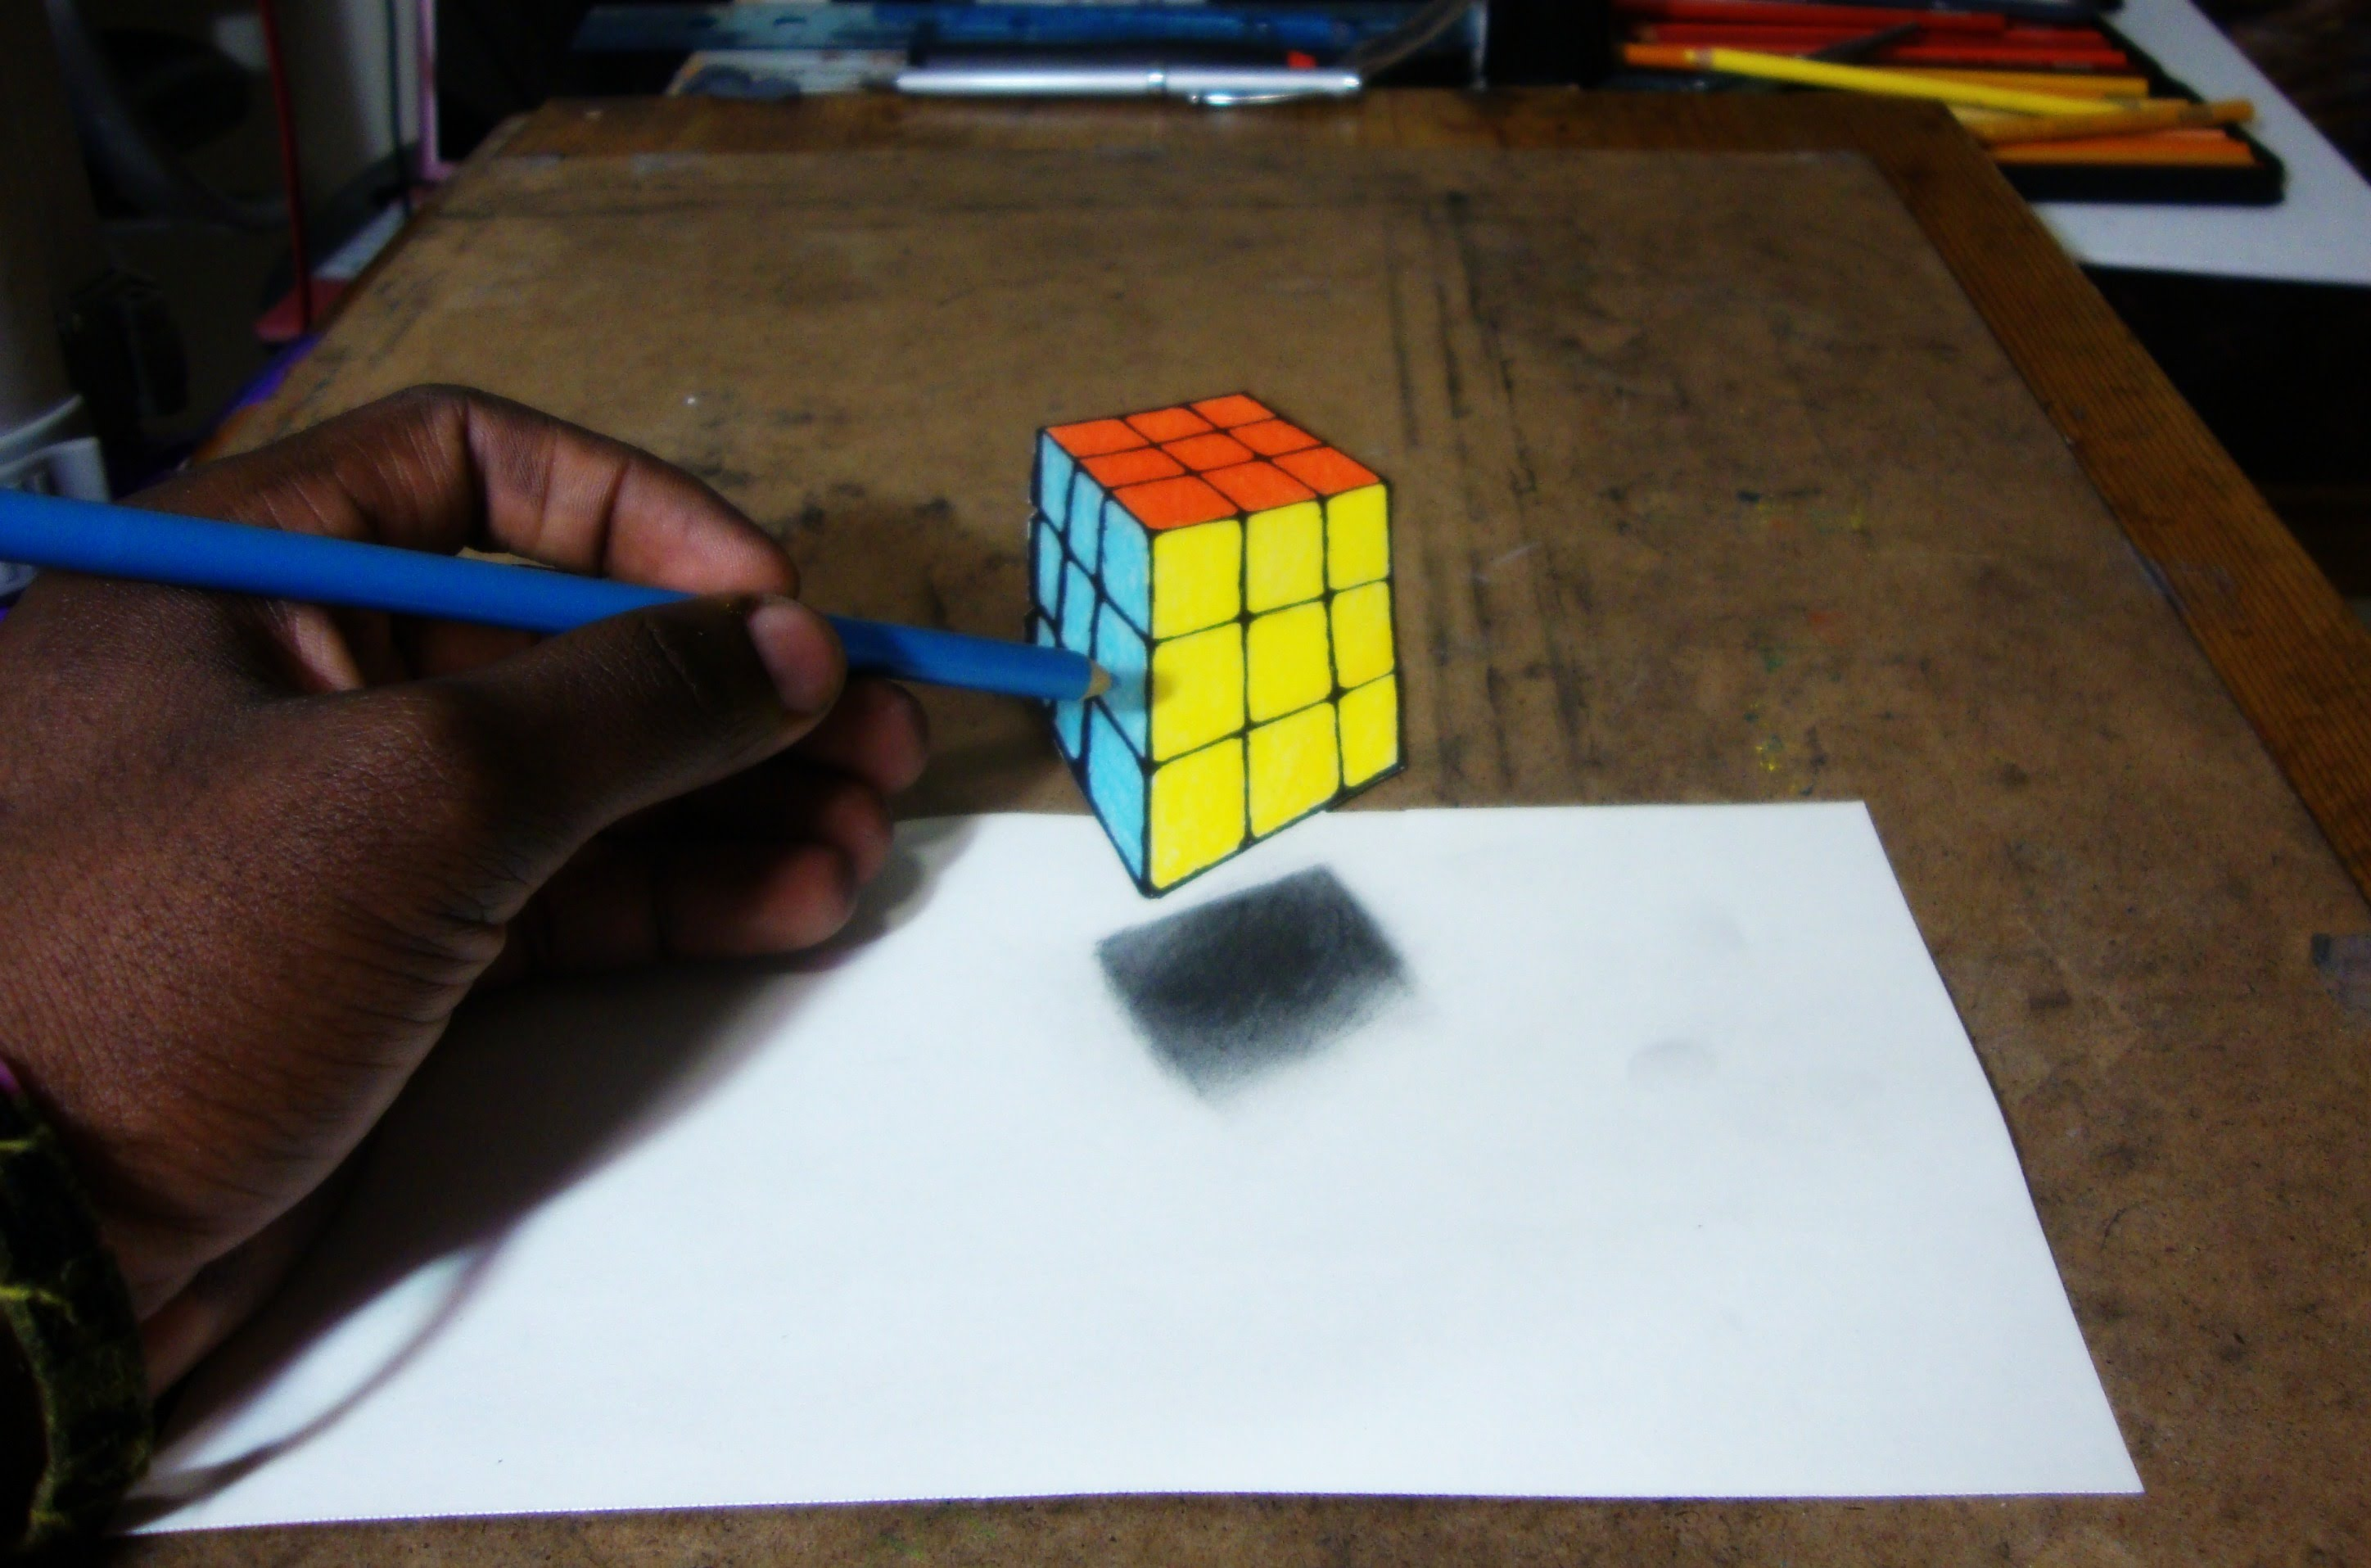 Drawn optical illusion cubic Cube 3D Illusion Rubik's 3D